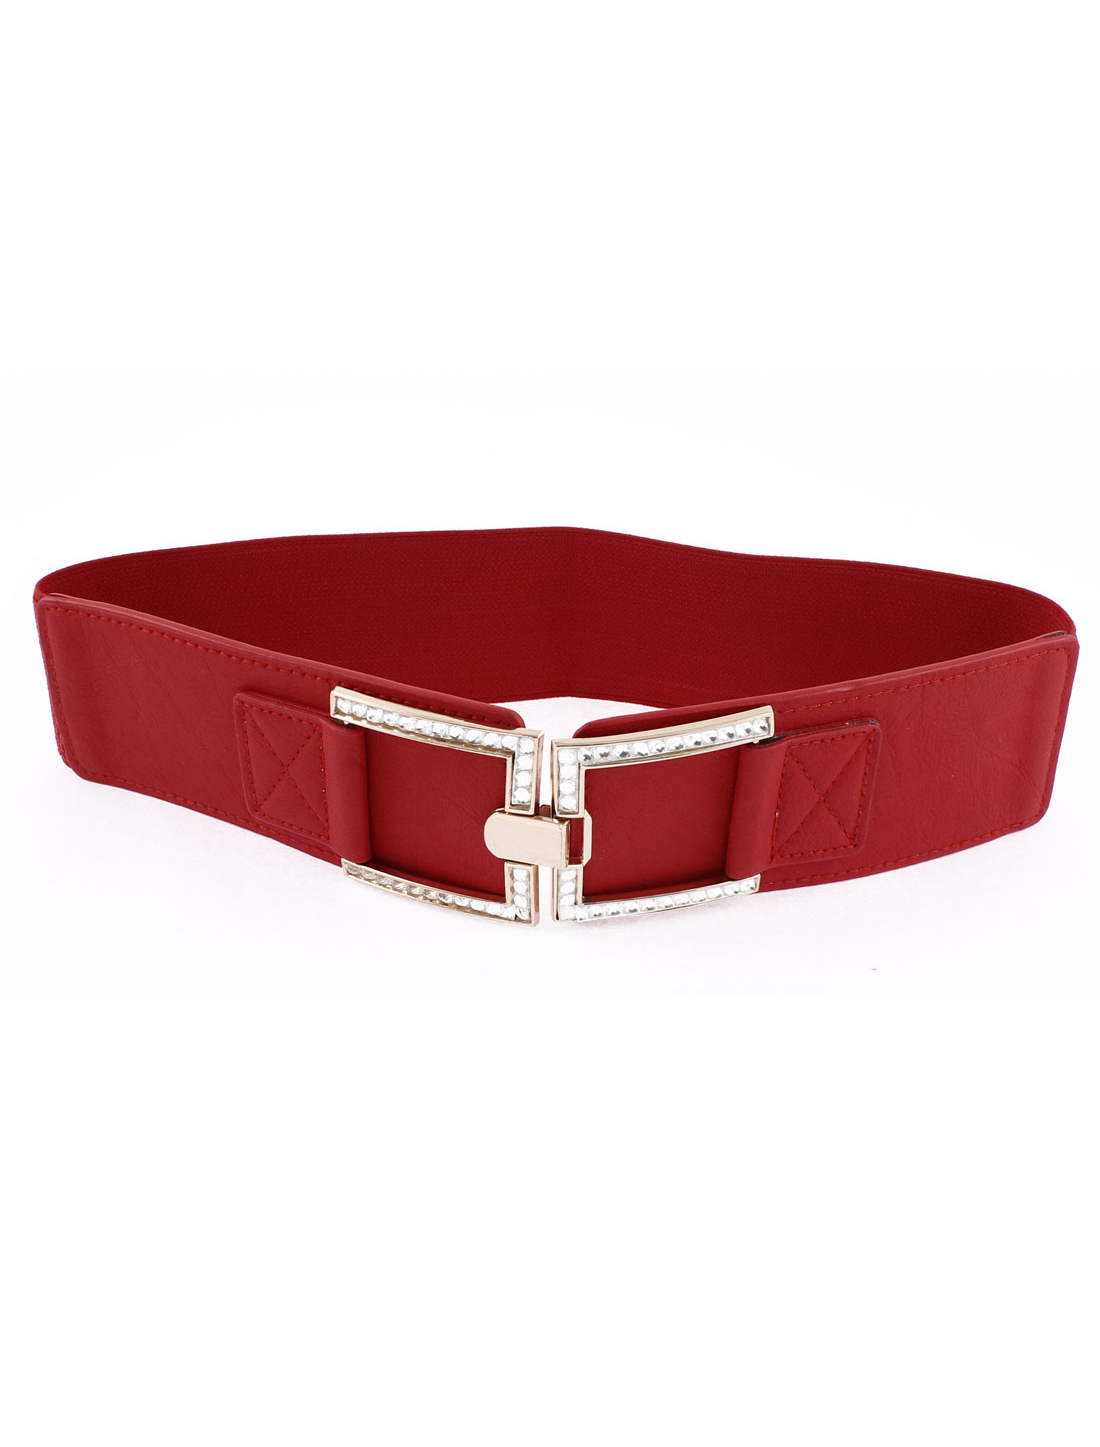 Women Interlocking Buckle Elastic Stretch Cinch Waist Belt Red 6cm Width